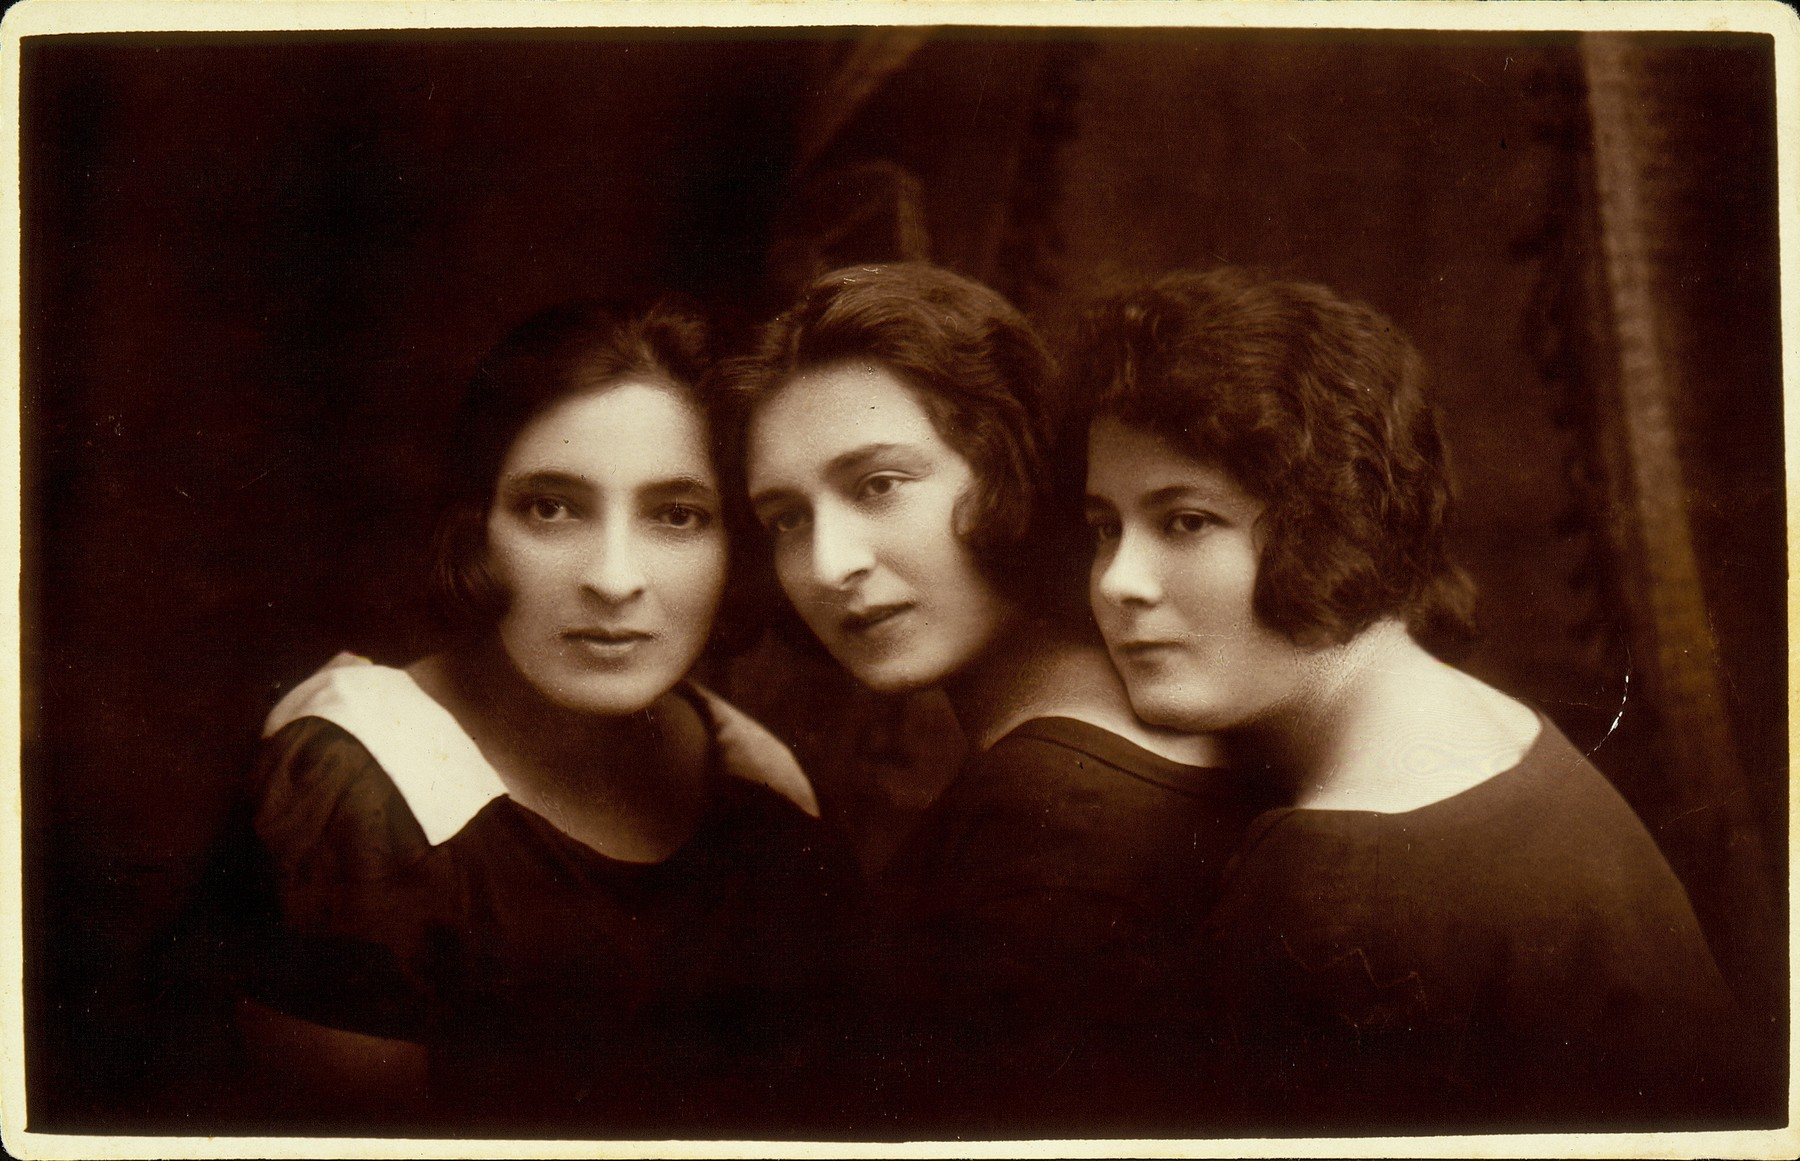 Studio portrait of three young Jewish women in Eisiskes.  Pictured from right to left are Gitta Oshochowski, Dora Zlotnik and Mira Iasinowski.  The photograph was taken on the occasion of Dora's departure for Palestine. Gitta and her family were killed in the Lida ghetto on May 8, 1942.